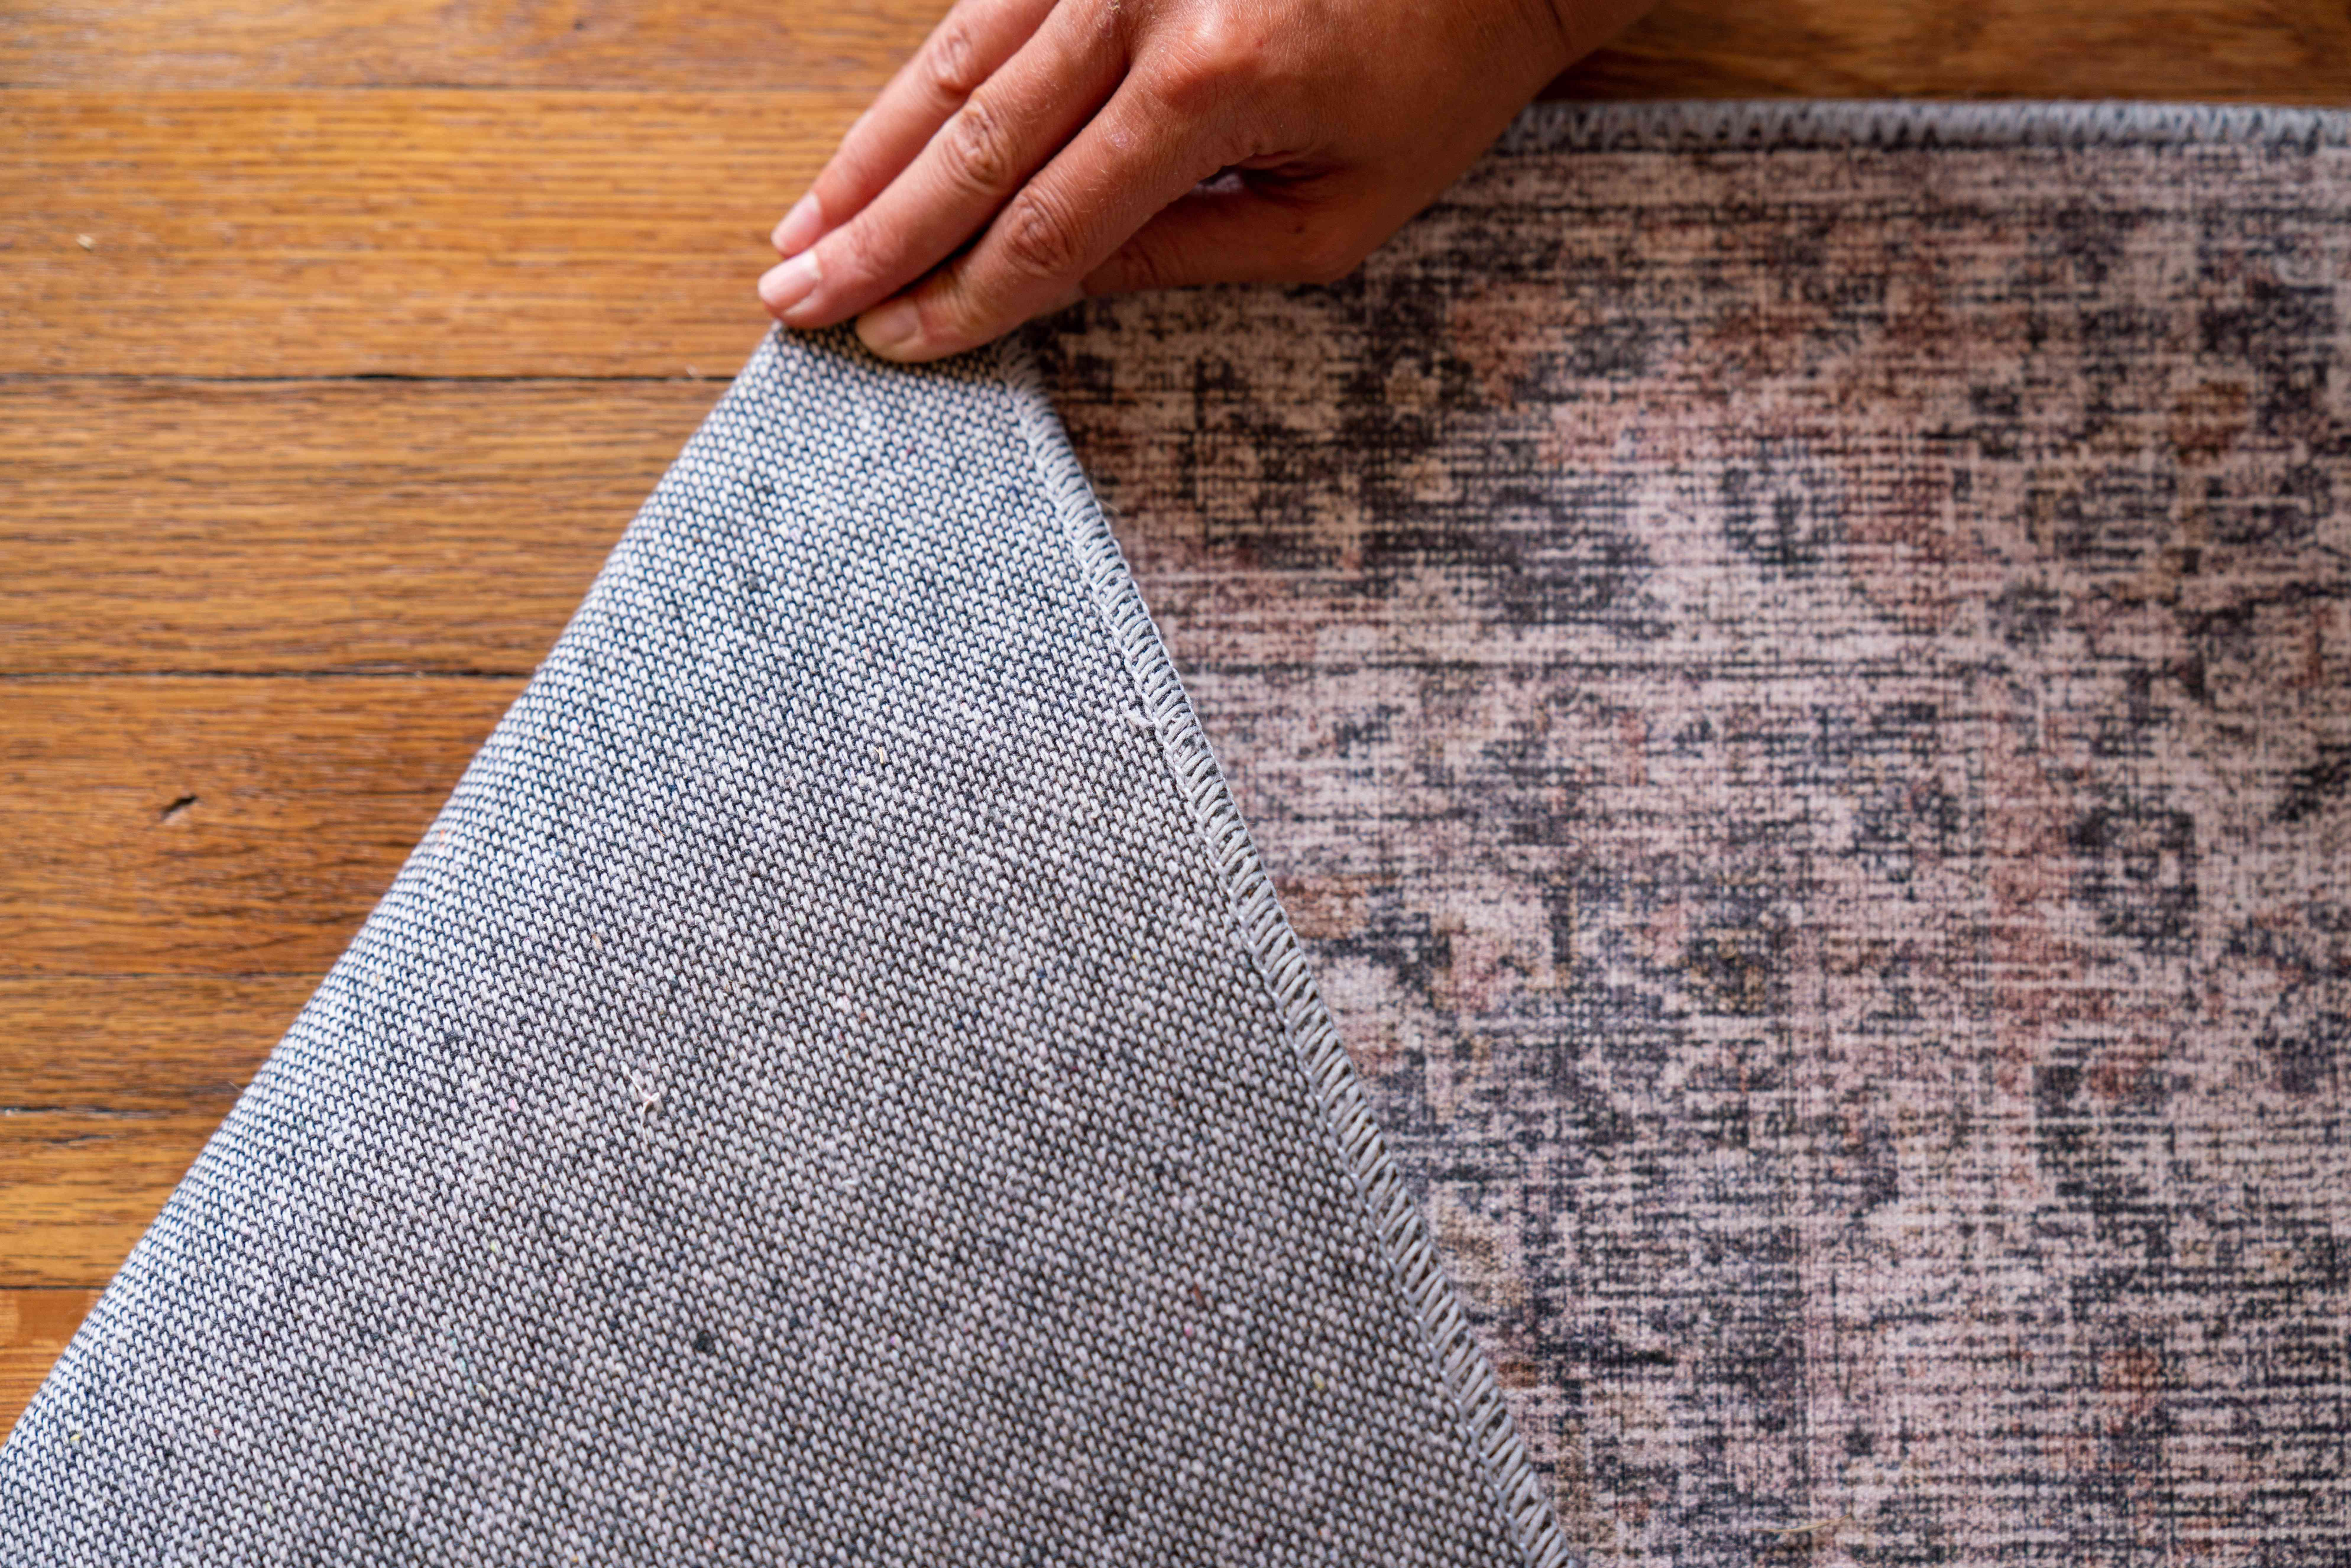 Light pink, tan and gray hand-tufted rug flipped over to to show mechanized and hand-made pattern